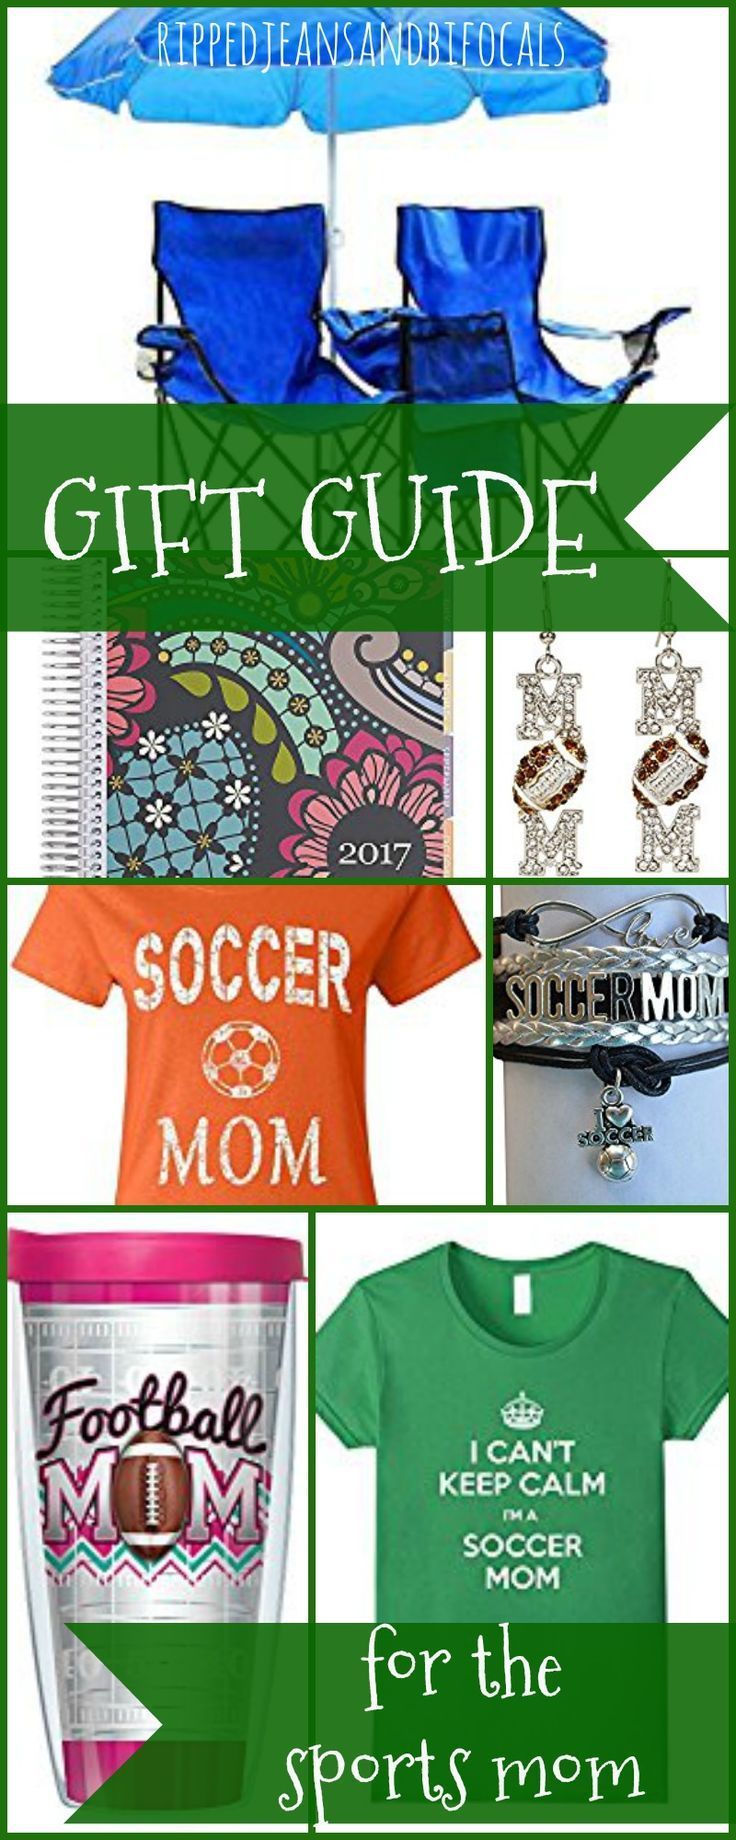 A gift guide for the sports mom